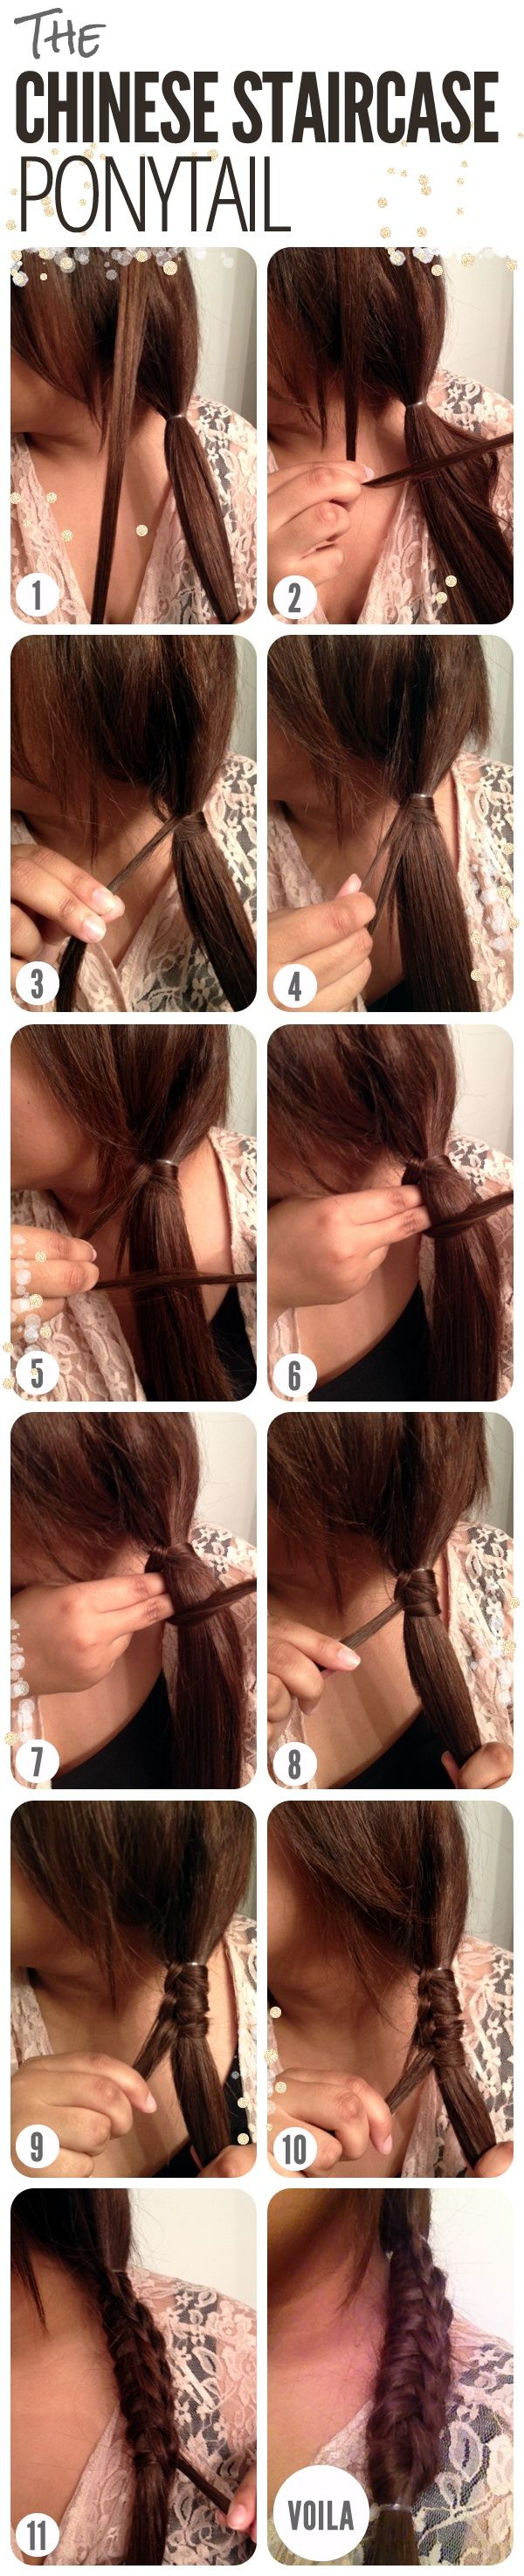 20 Clever And Interesting Pic Tutorials For Your Hairstyle.